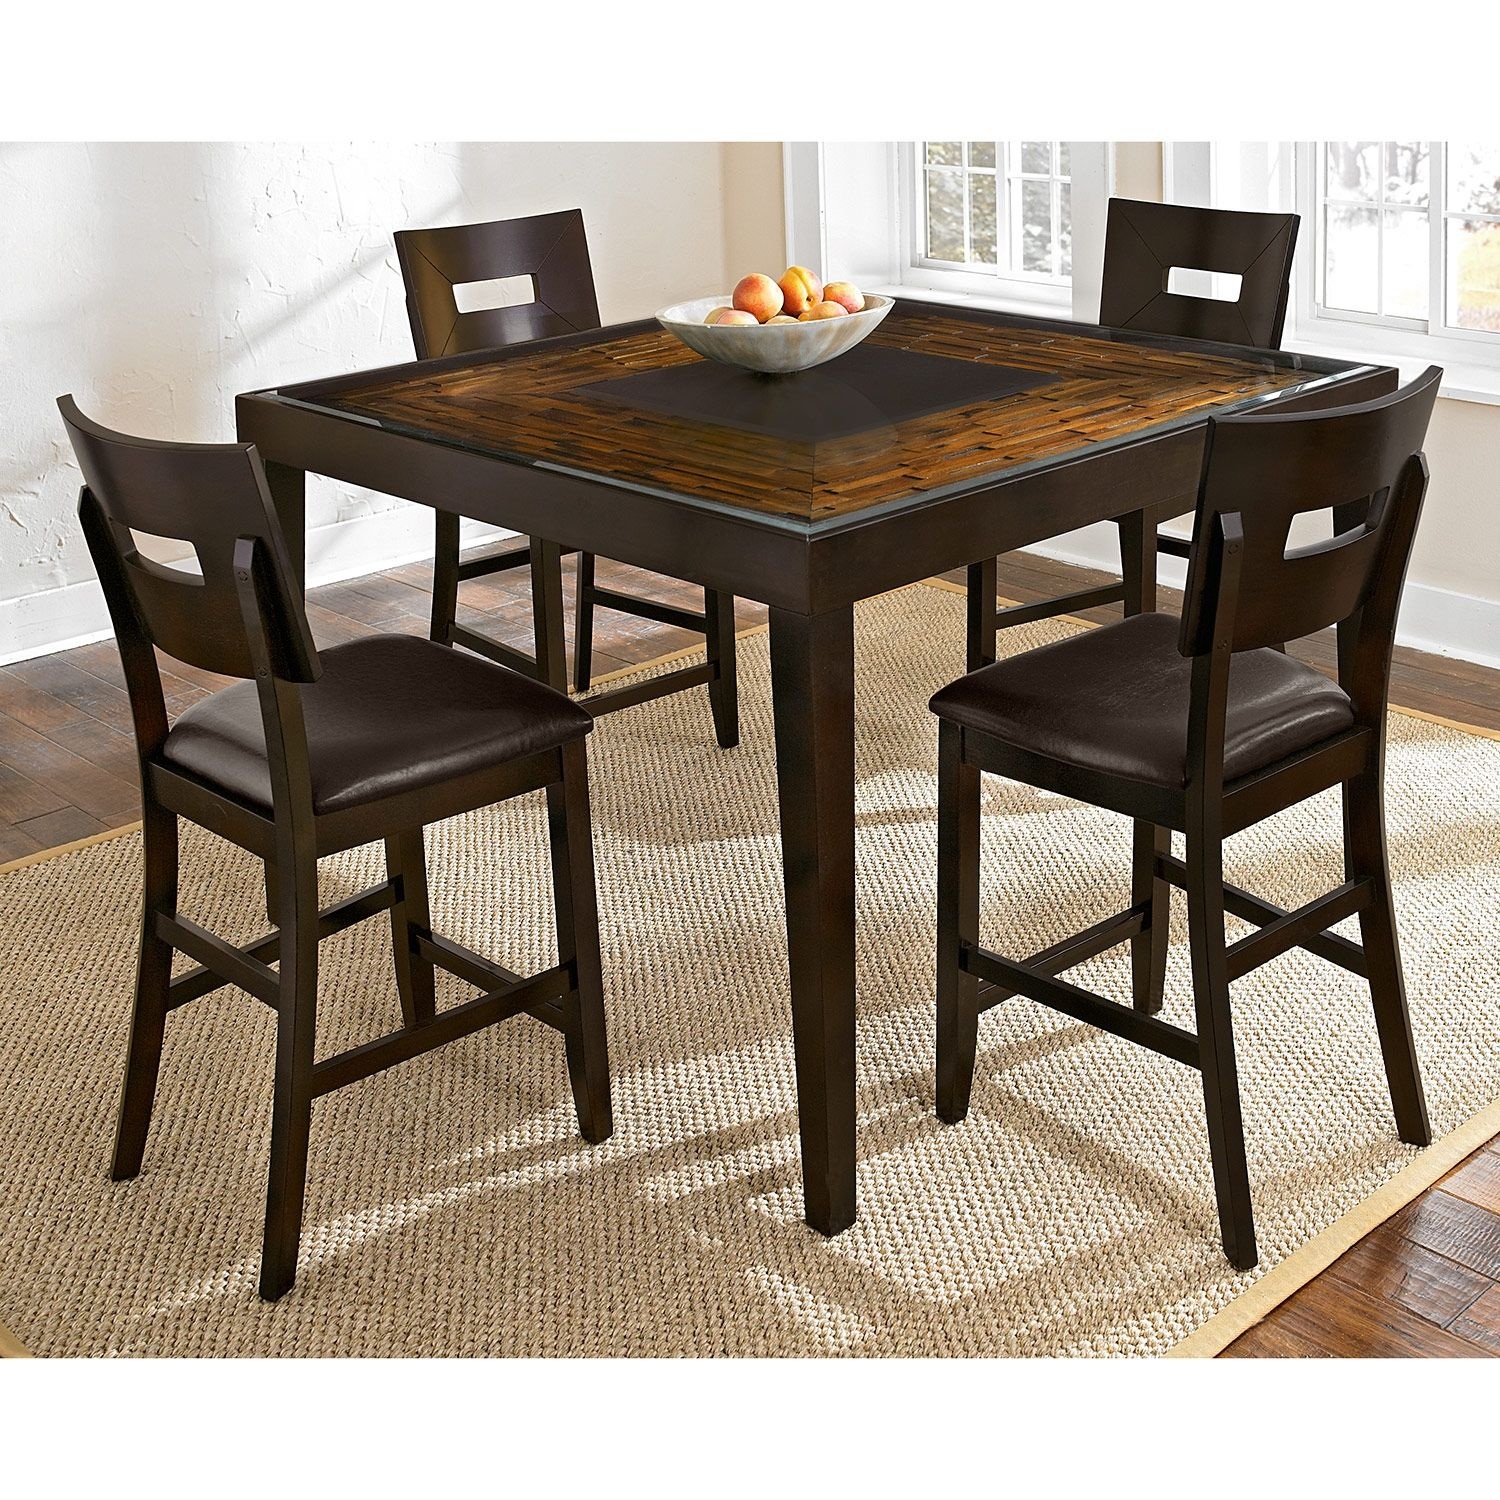 Excellent American Signature Dining Room Sets Ideas House